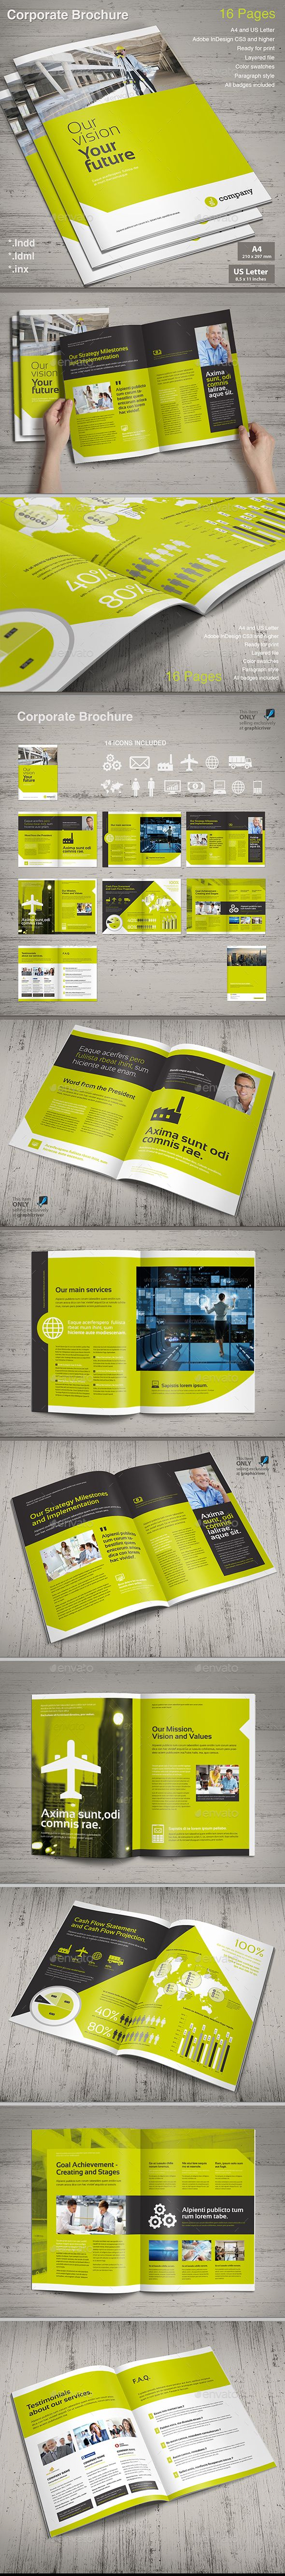 Corporate Brochure Vol.3 — InDesign Template • Only available here ...